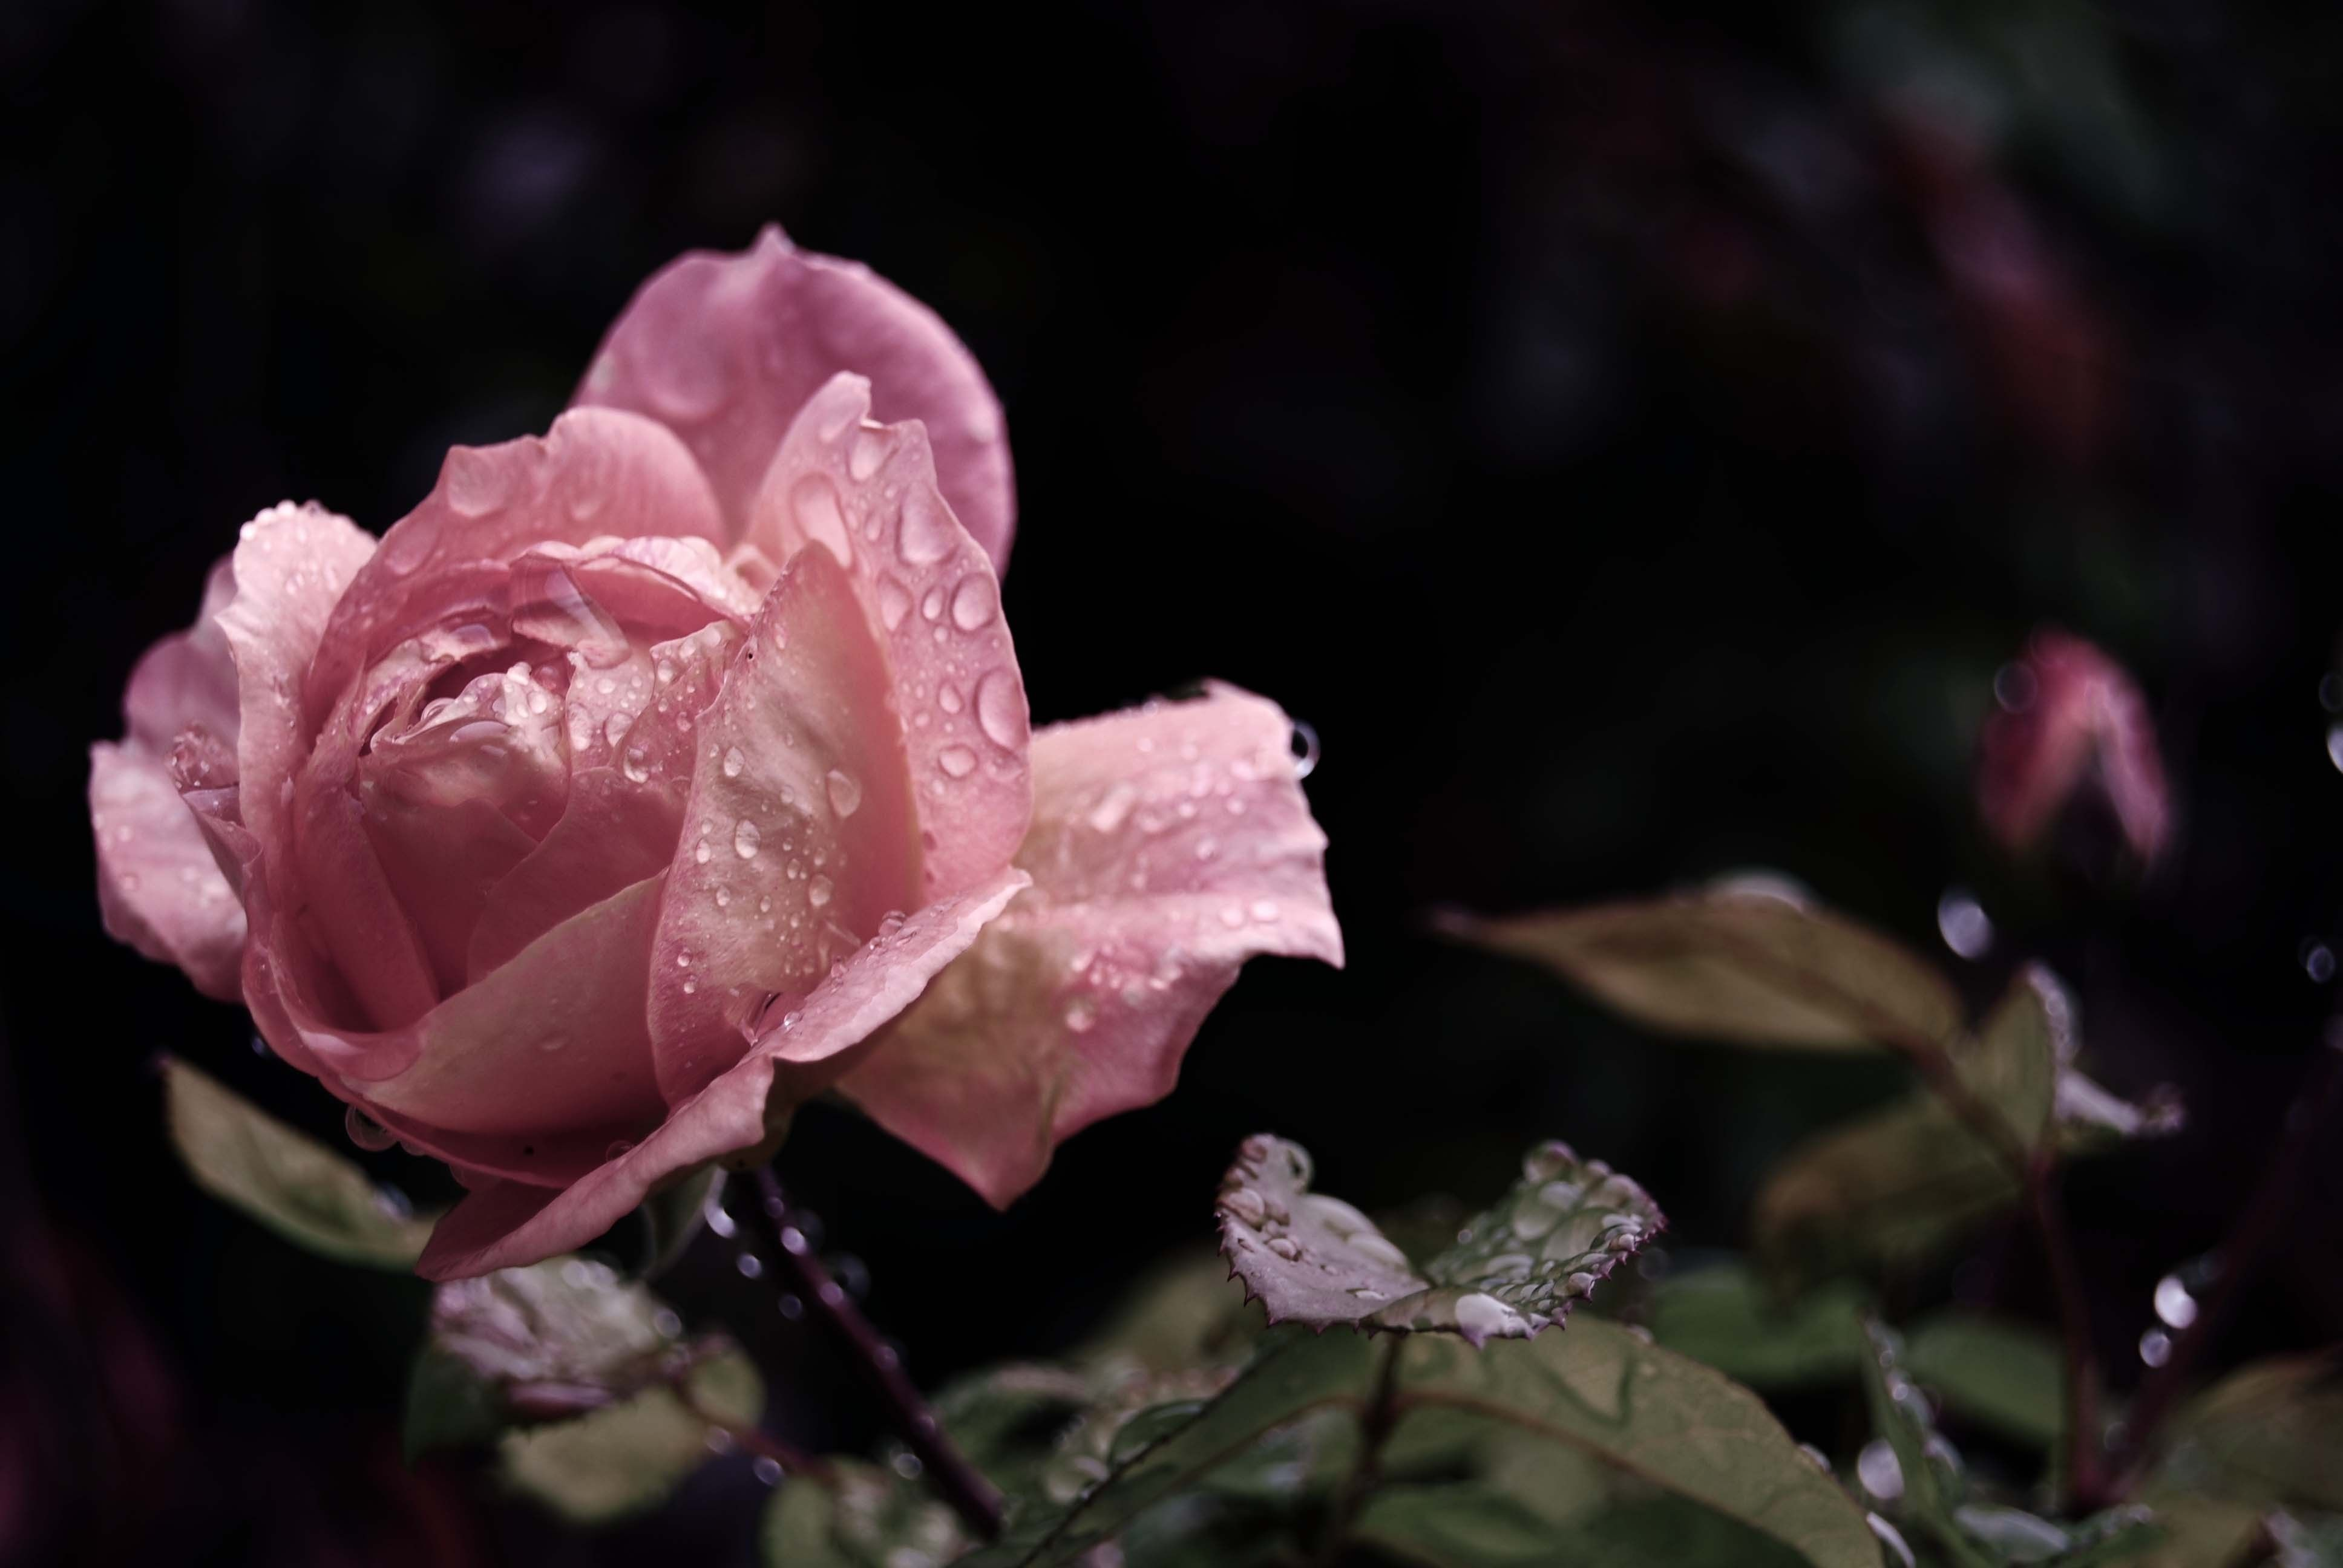 3872x2592 Wallpaper rose, flower, bud, leaf, drops, rain